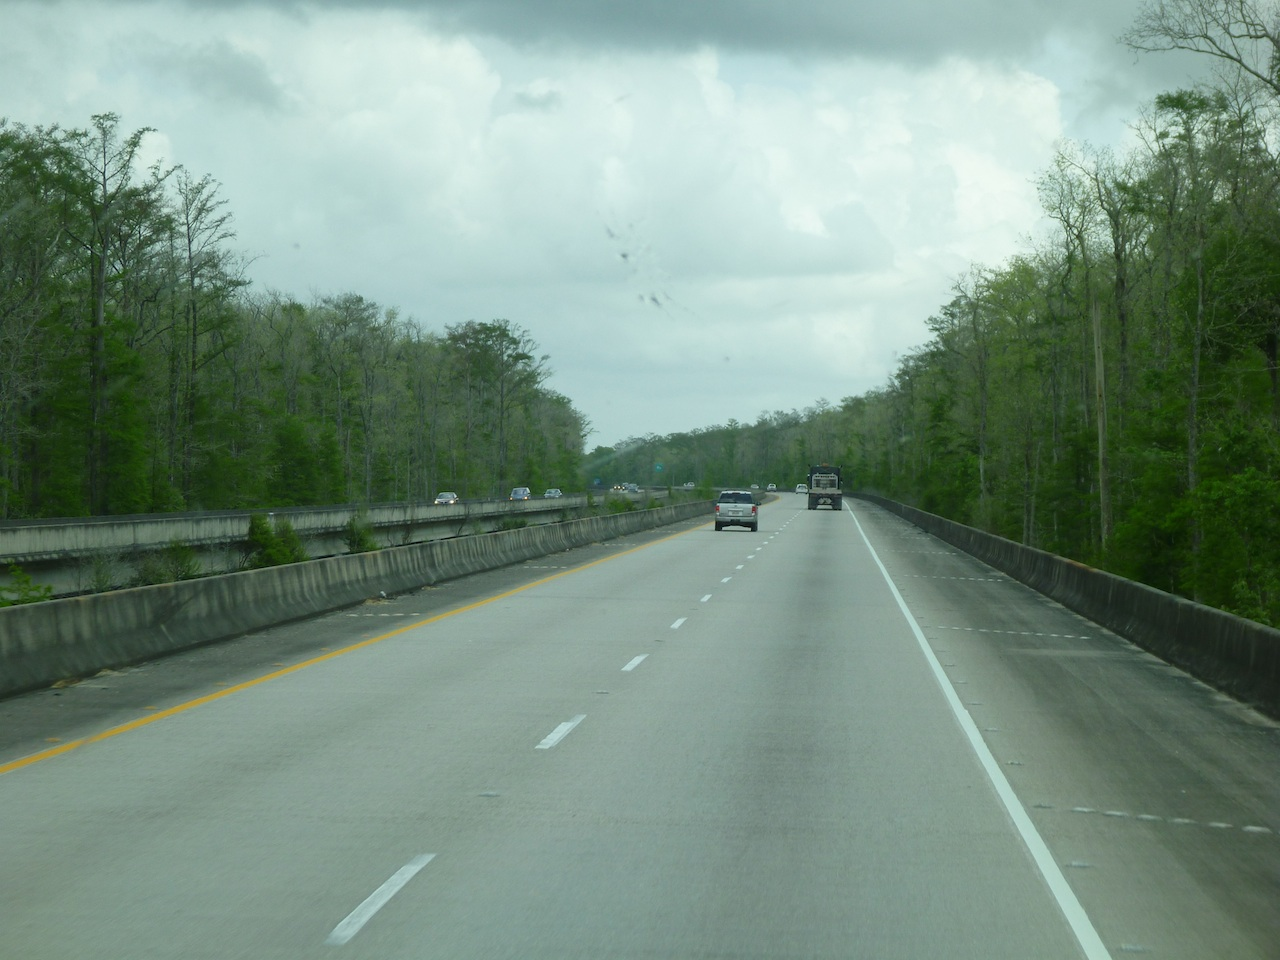 The Long bridge That Travels Over And Through The Swamp Land